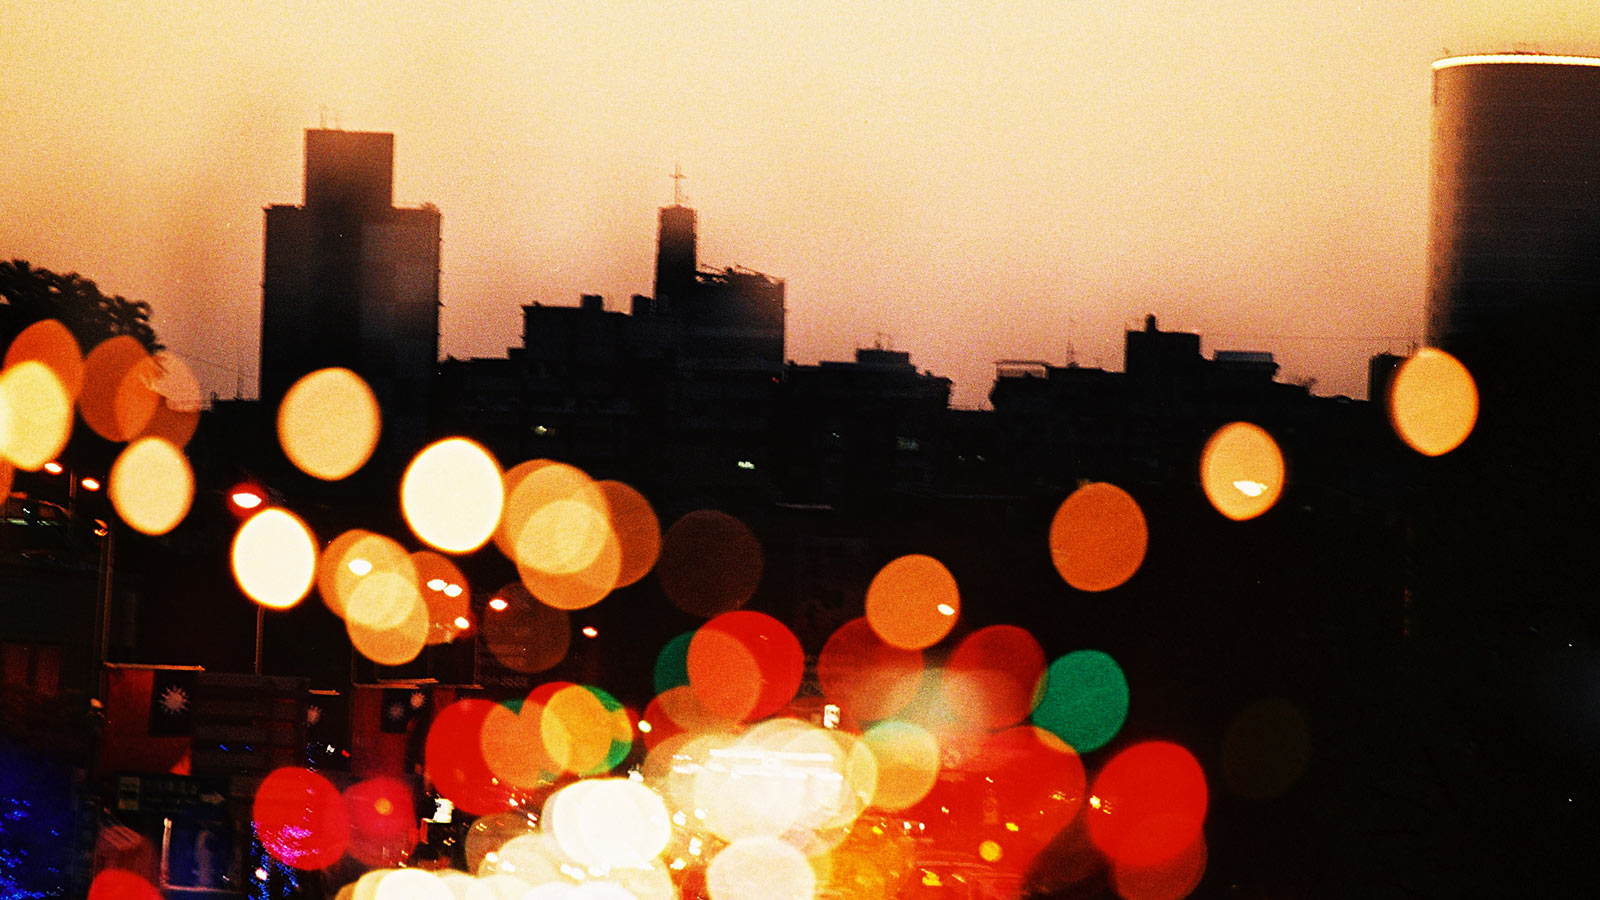 Blurred, bustling city driving